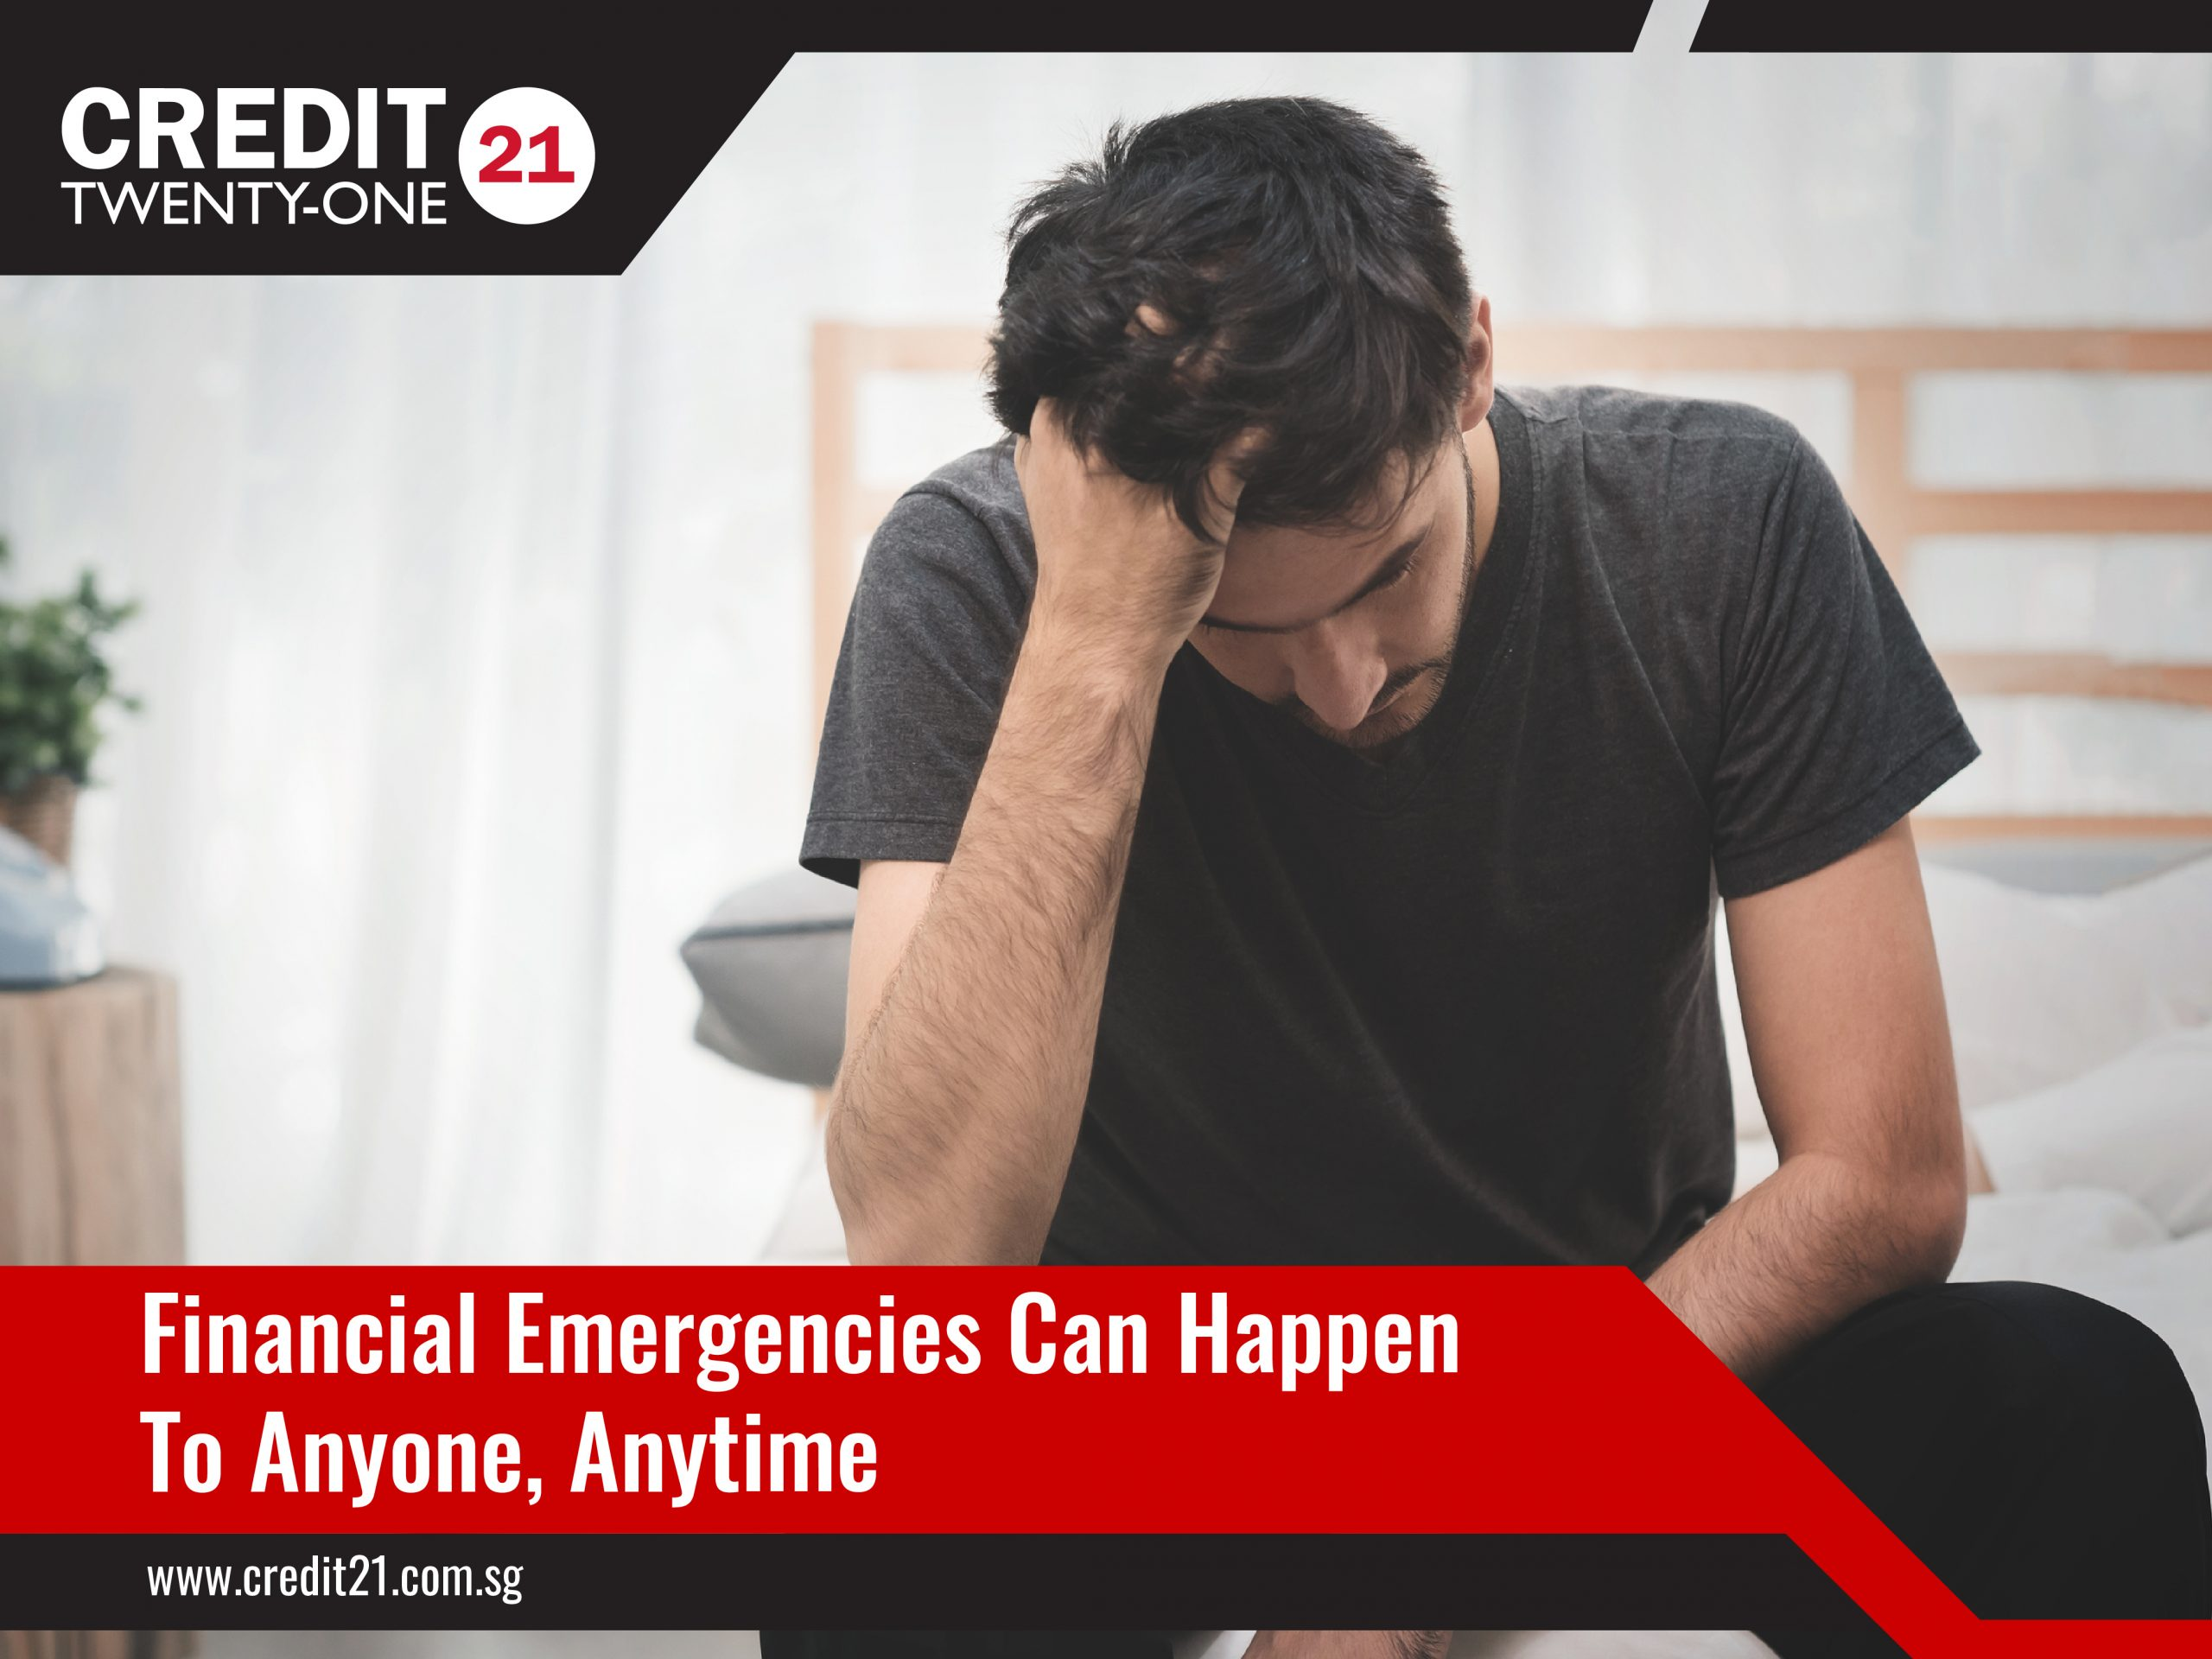 Financial Emergencies Can Happen To Anyone Anytime Credit 21 Urgent Loan Singapore